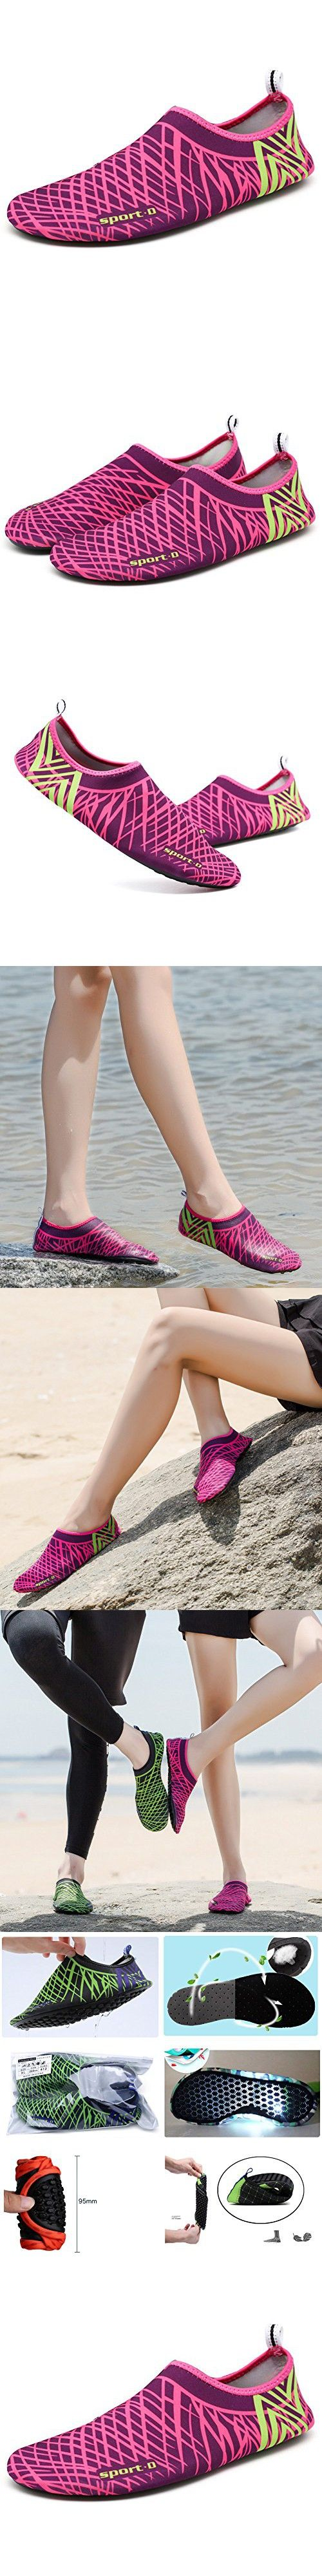 EQUICK Men Women and Kids' Water Shoes Outdoor Sports Aqua Socks Quick-dry Holey Ventilation KPU Outsole,CDFS5,Red,M